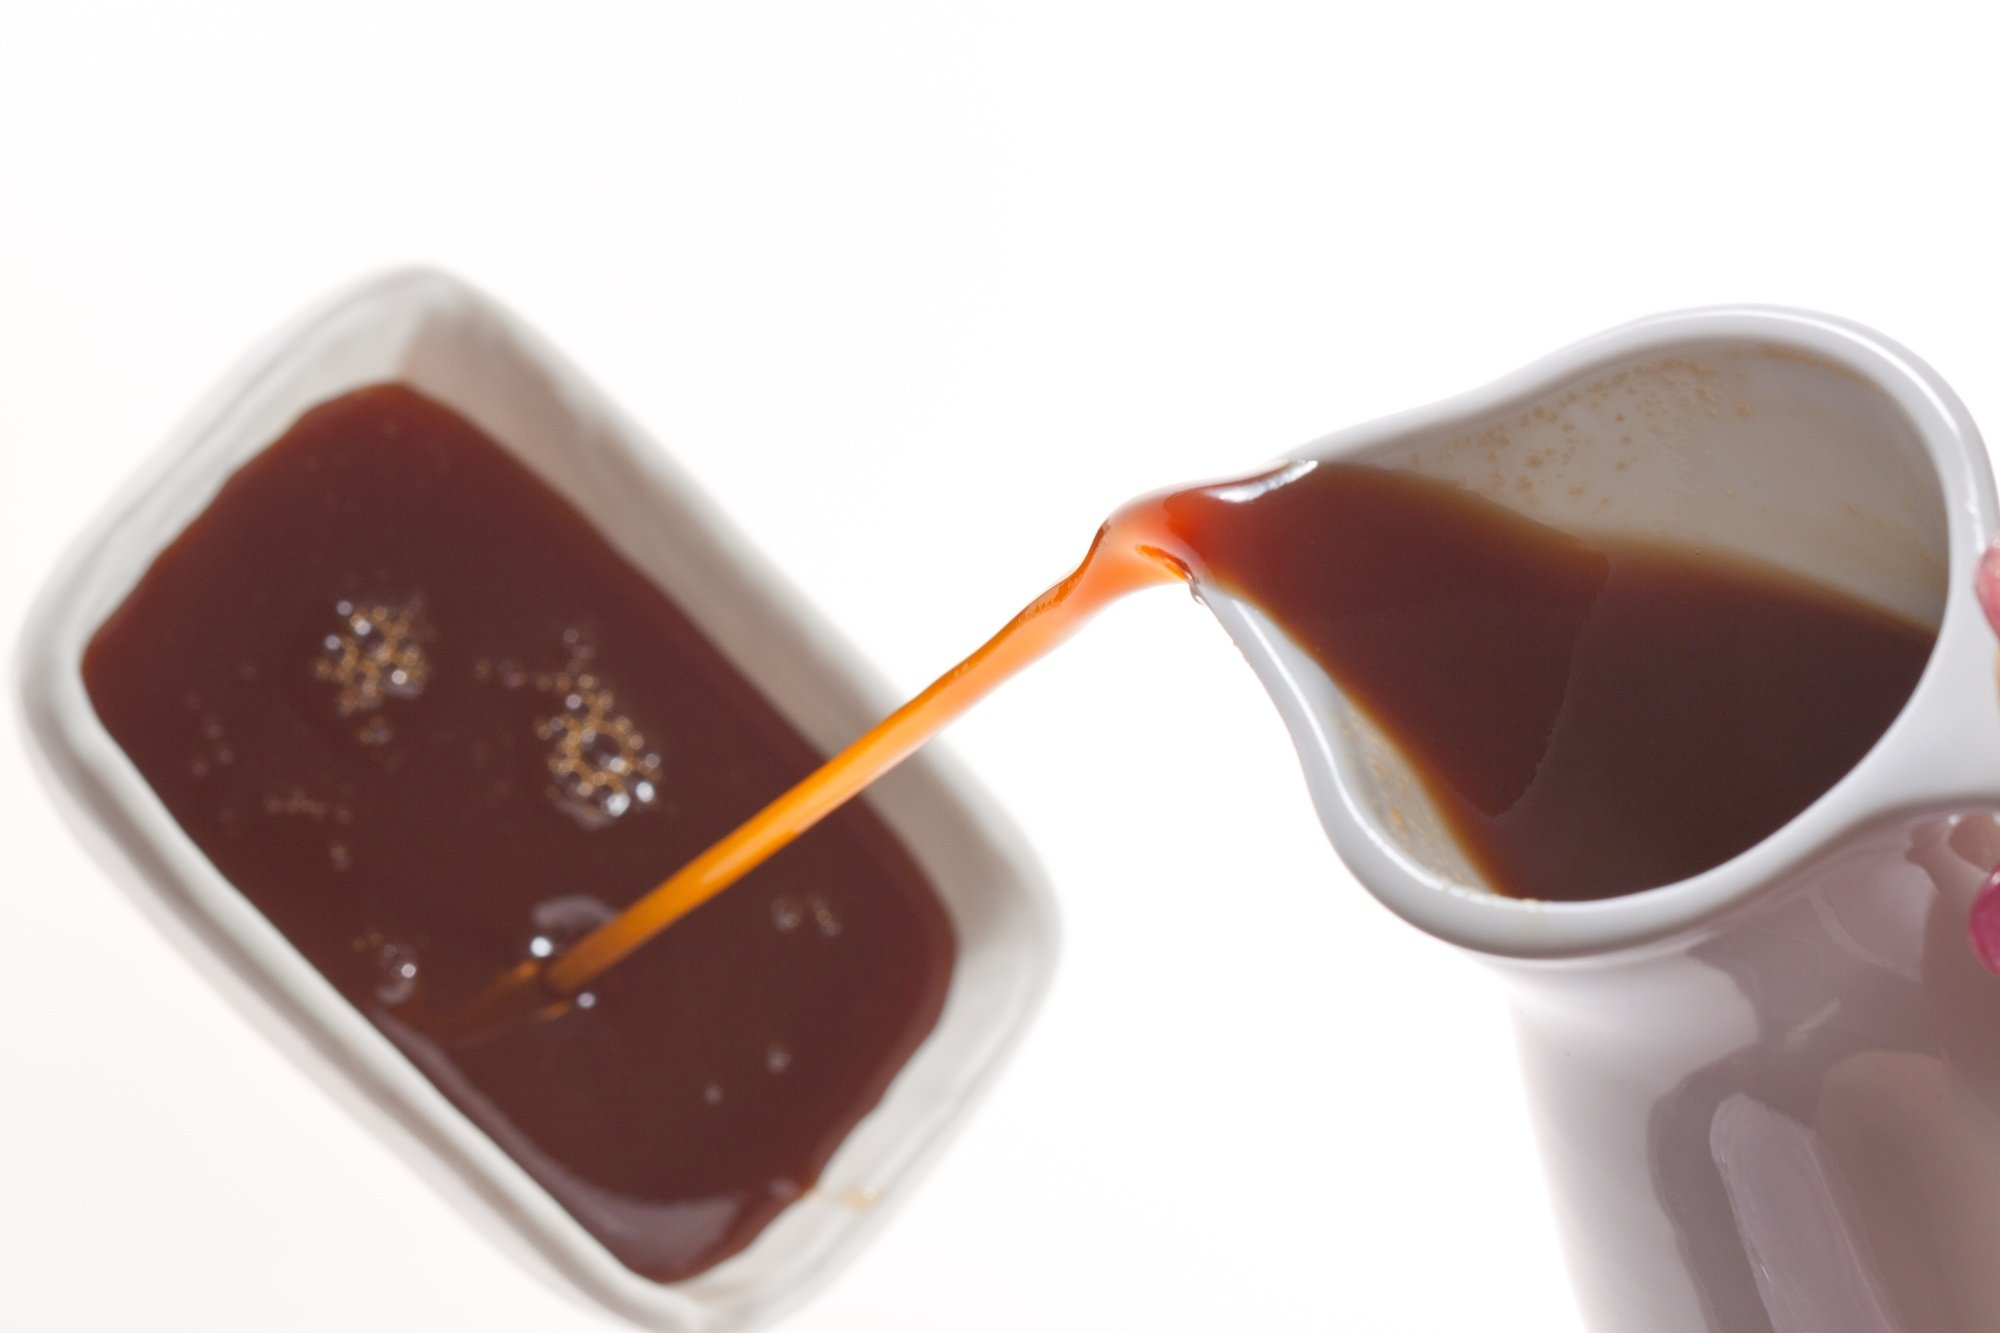 6 Ways to Use Worcestershire Sauce To Prepare Family Meals